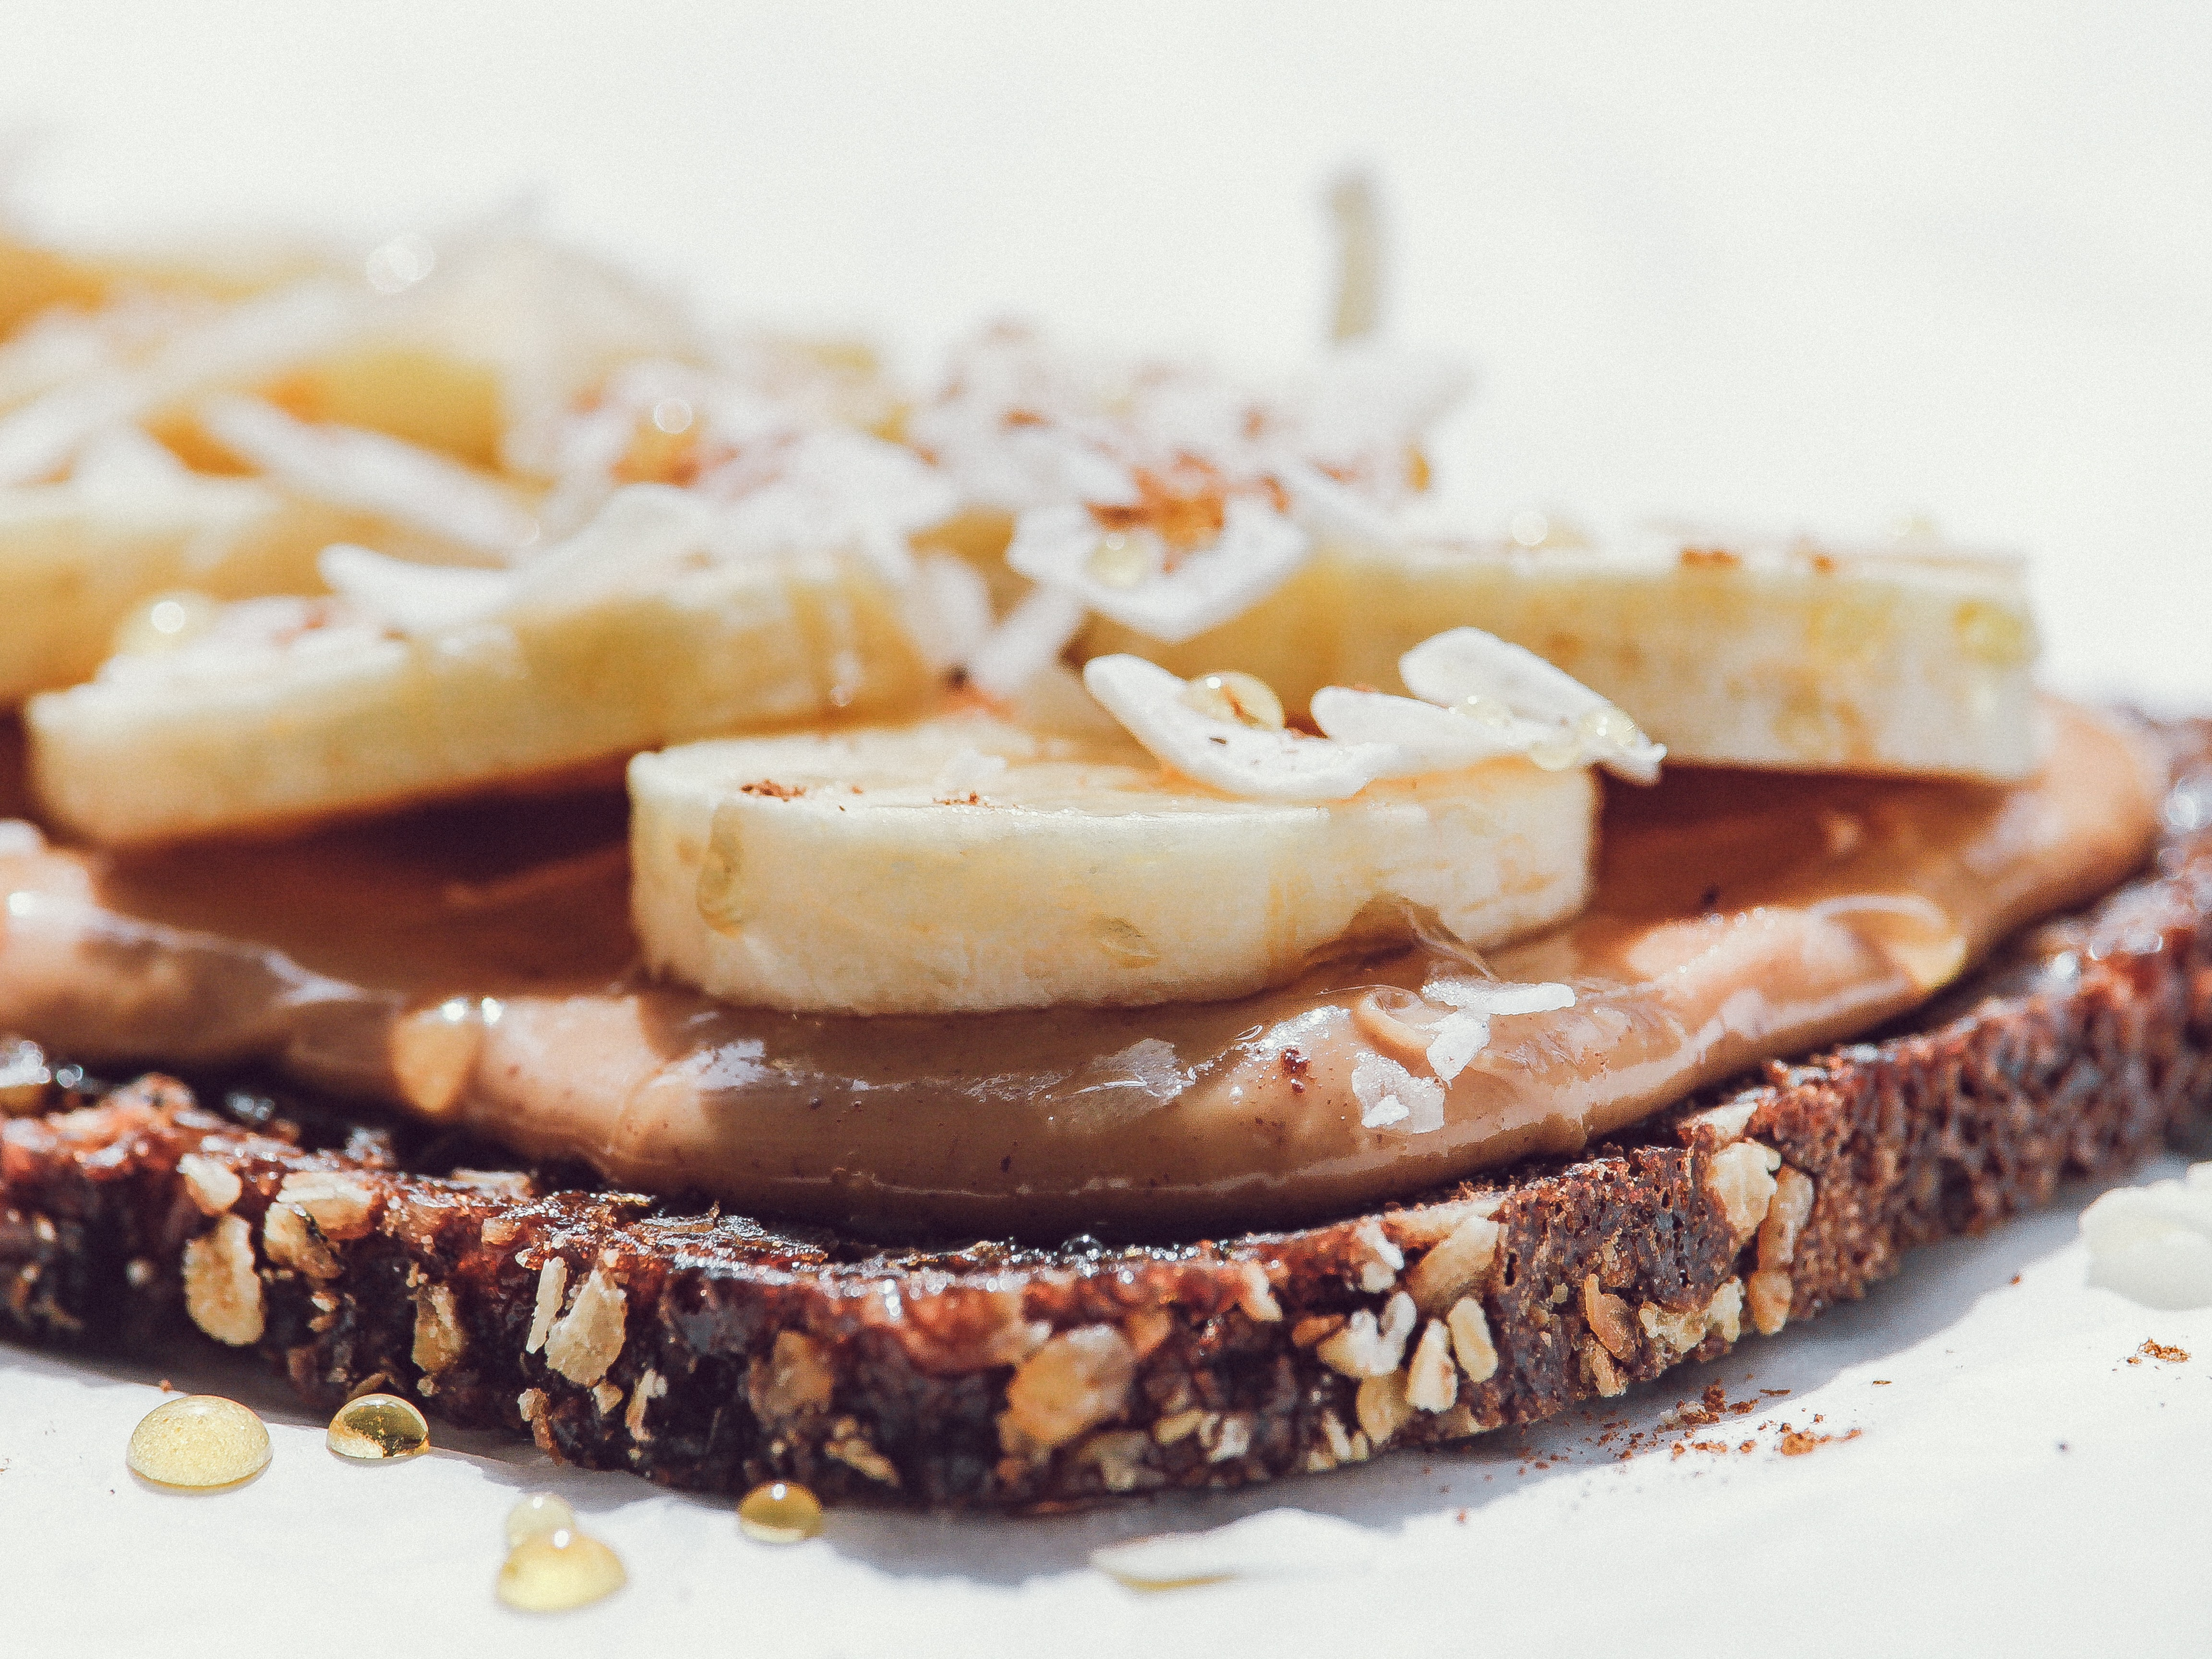 banana-topped cookie dessert